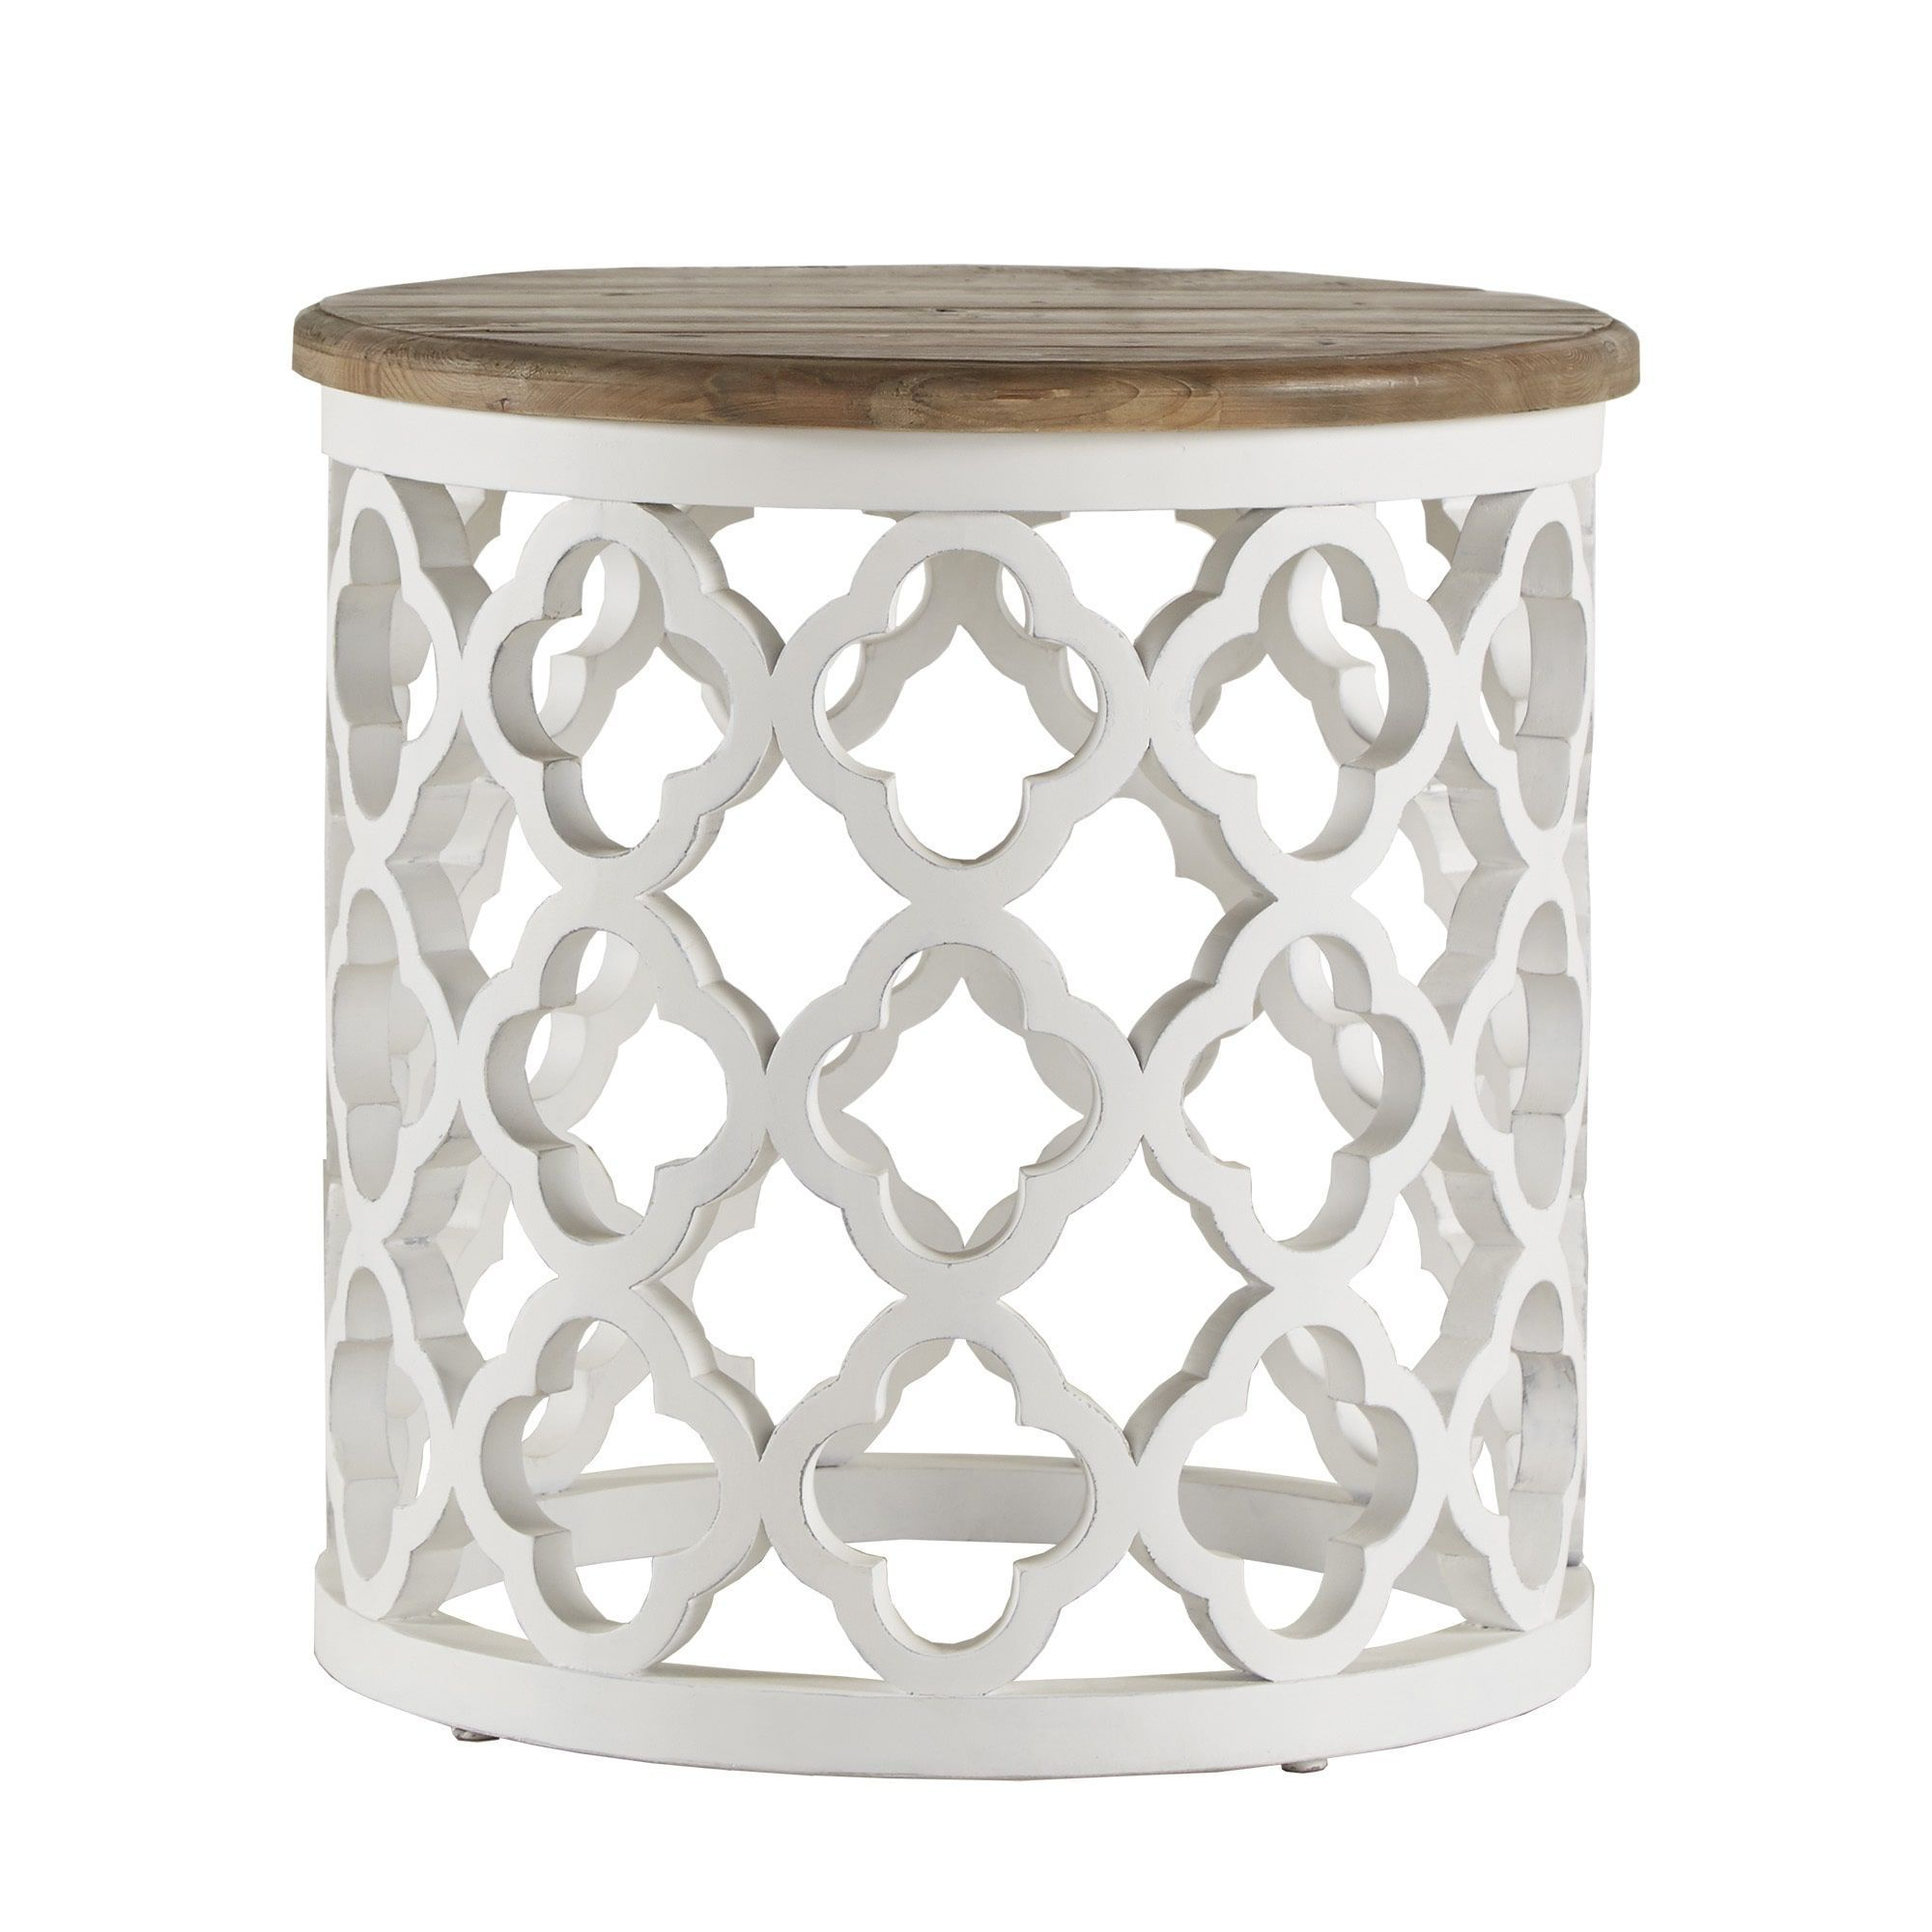 vince reclaimed wood moroccan trellis drum accent table inspire white artisan finish ashley furniture end tables with drawers homeware decor navy blue coffee dinner pub cloths